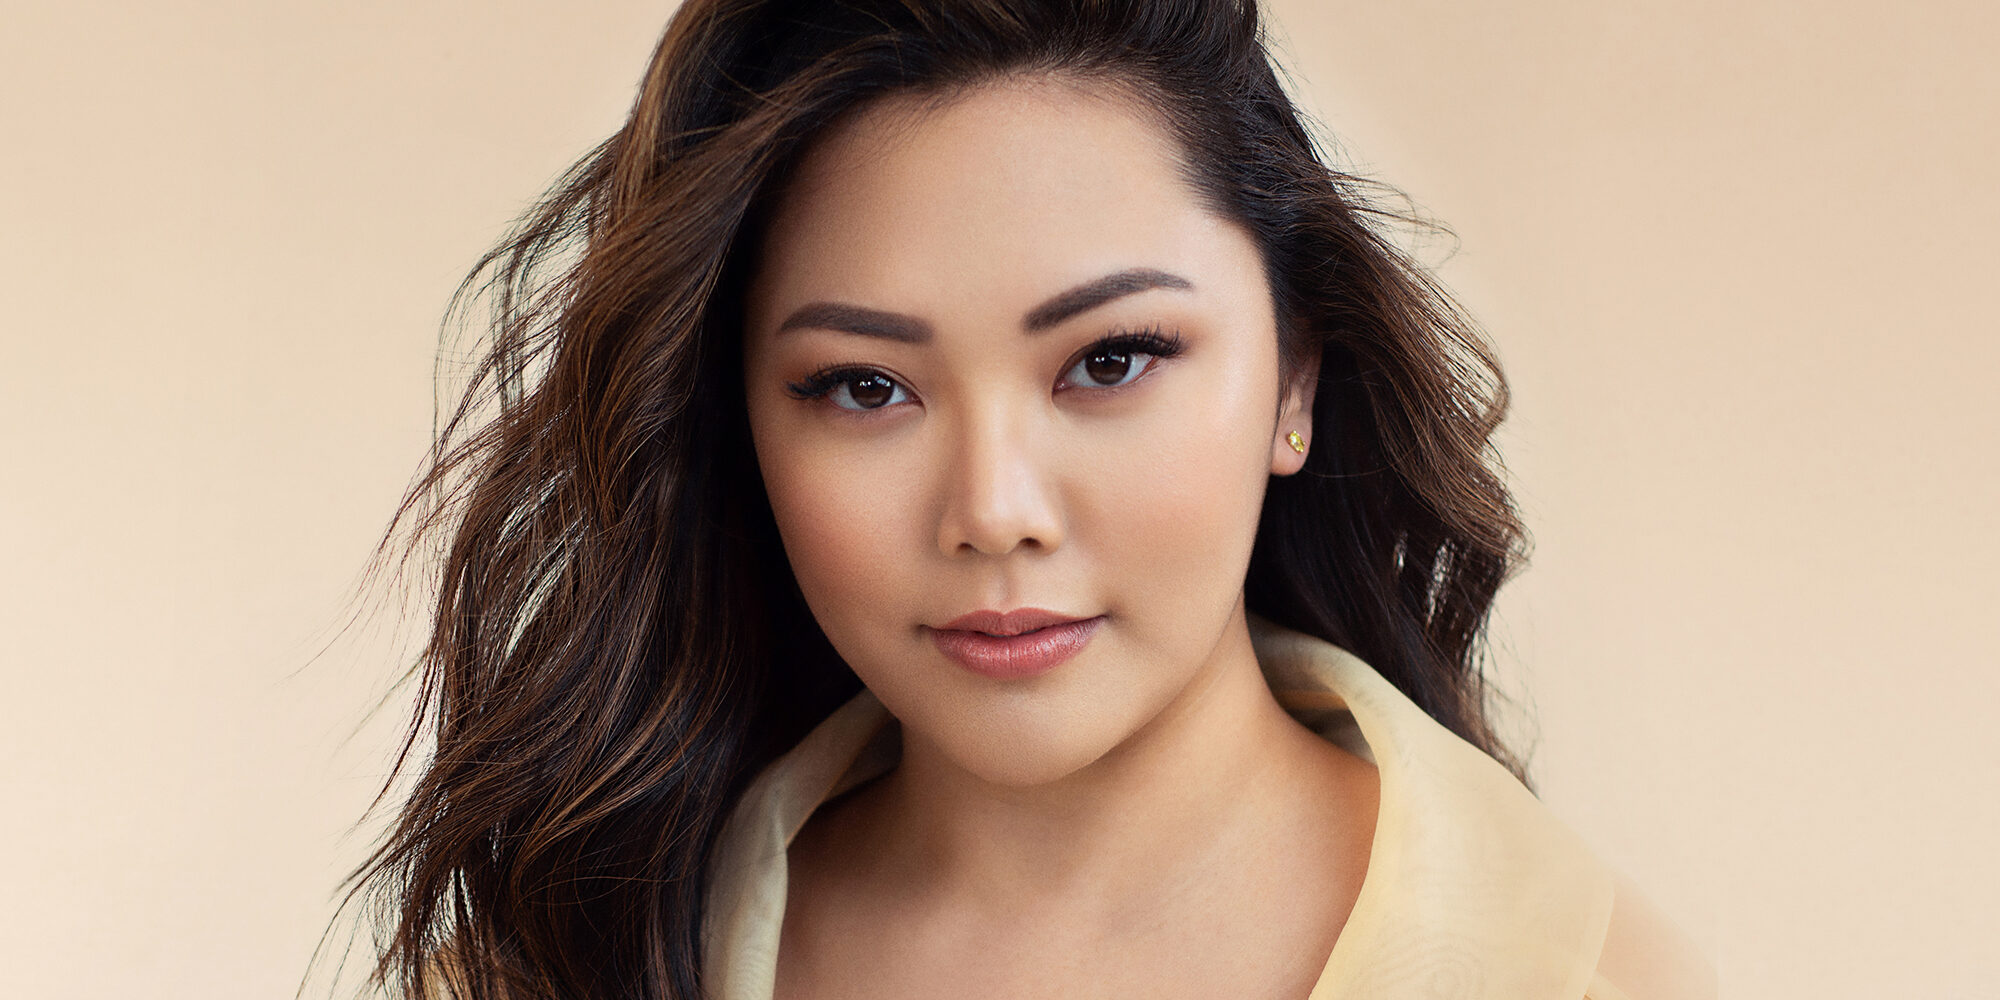 Orcé's Yu-Chen Shih On What It's Like To Be Asian In America And Lead A Brand Focused On Asian Complexions